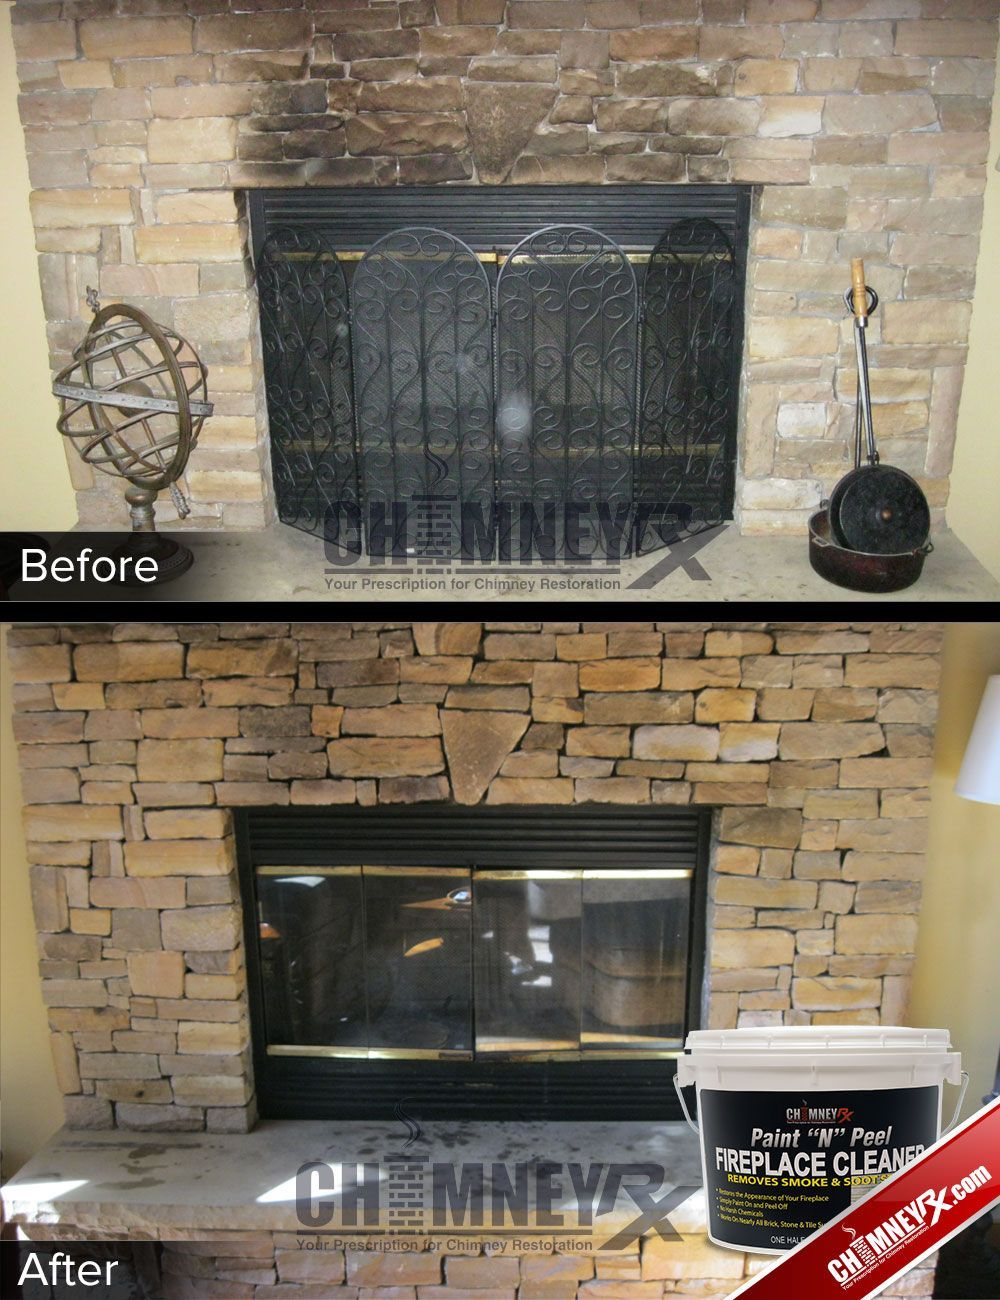 Smoke Stains On A Stone Fireplace Before And After Being Cleaned